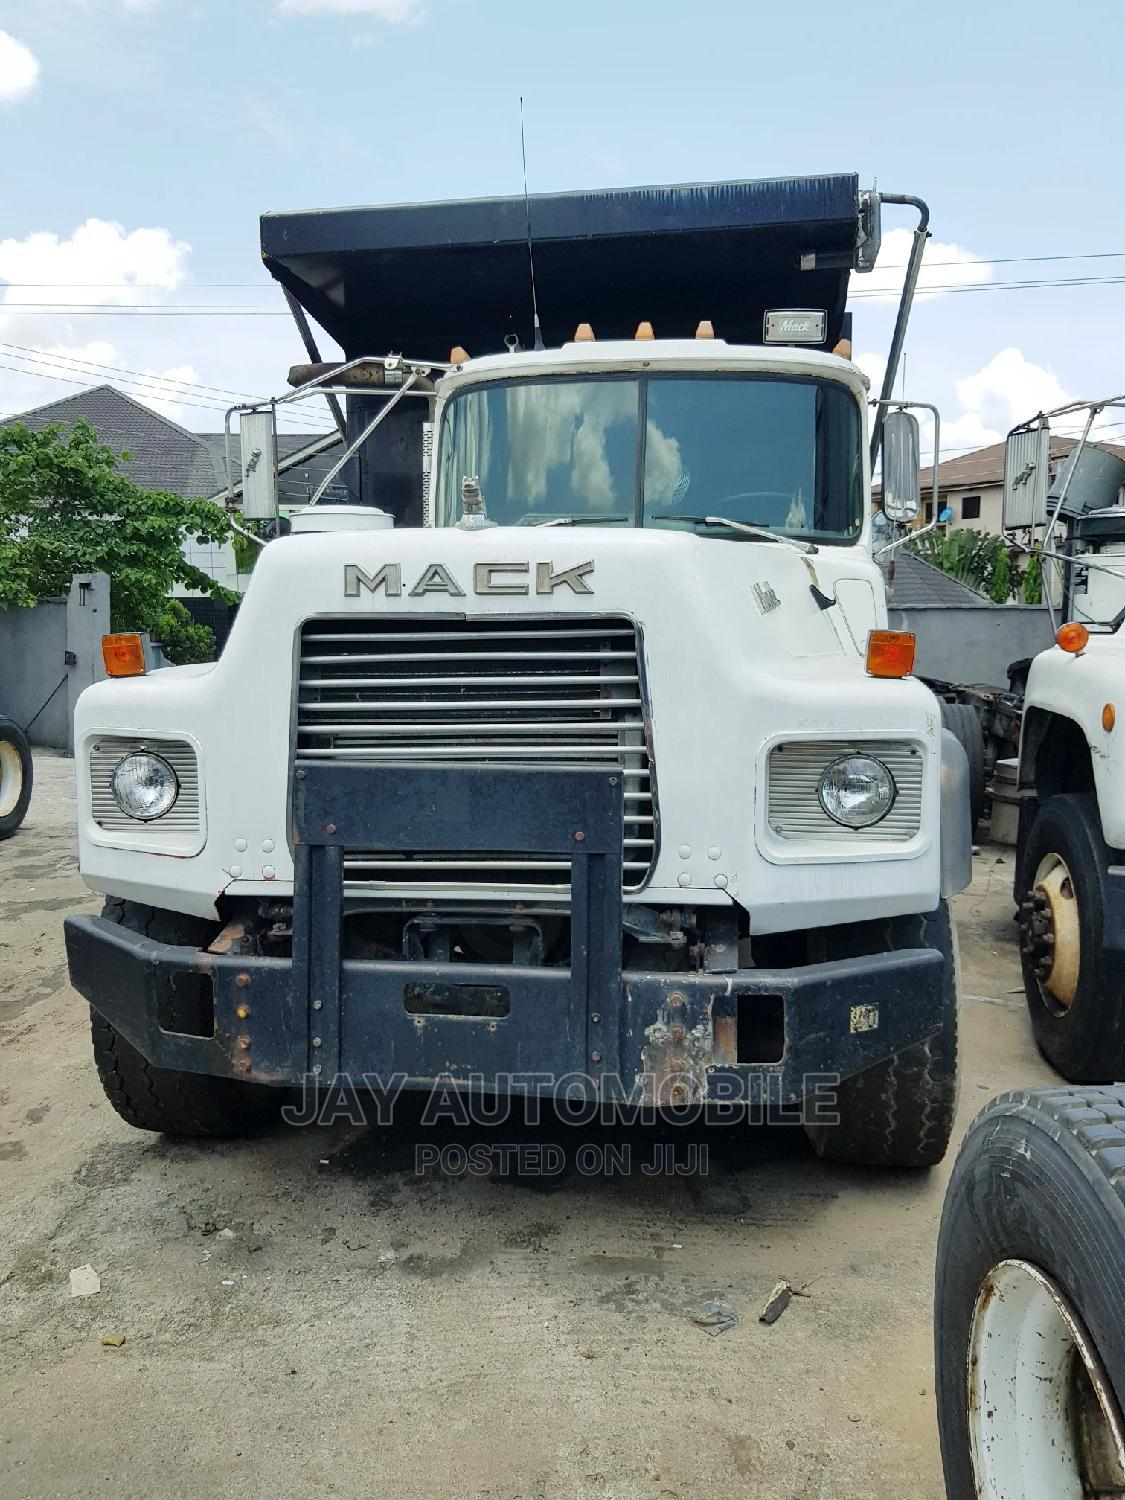 25 Tons MACK DUMP TRUCK for Sale   Trucks & Trailers for sale in Port-Harcourt, Rivers State, Nigeria